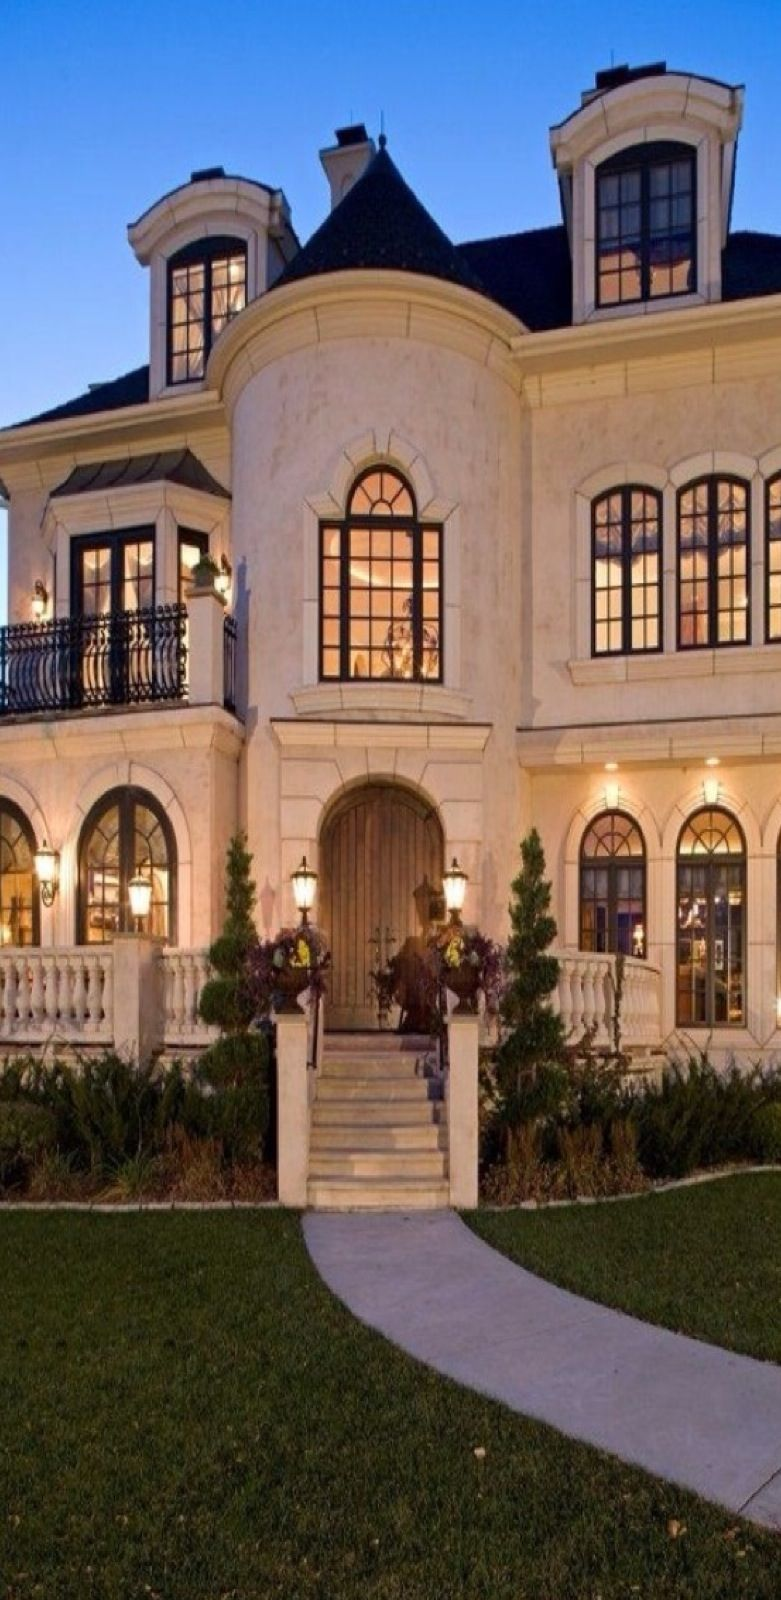 Amazing Home With Turret. Cream Colored Exterior With Dark Roofing.    Luxury Home Decor